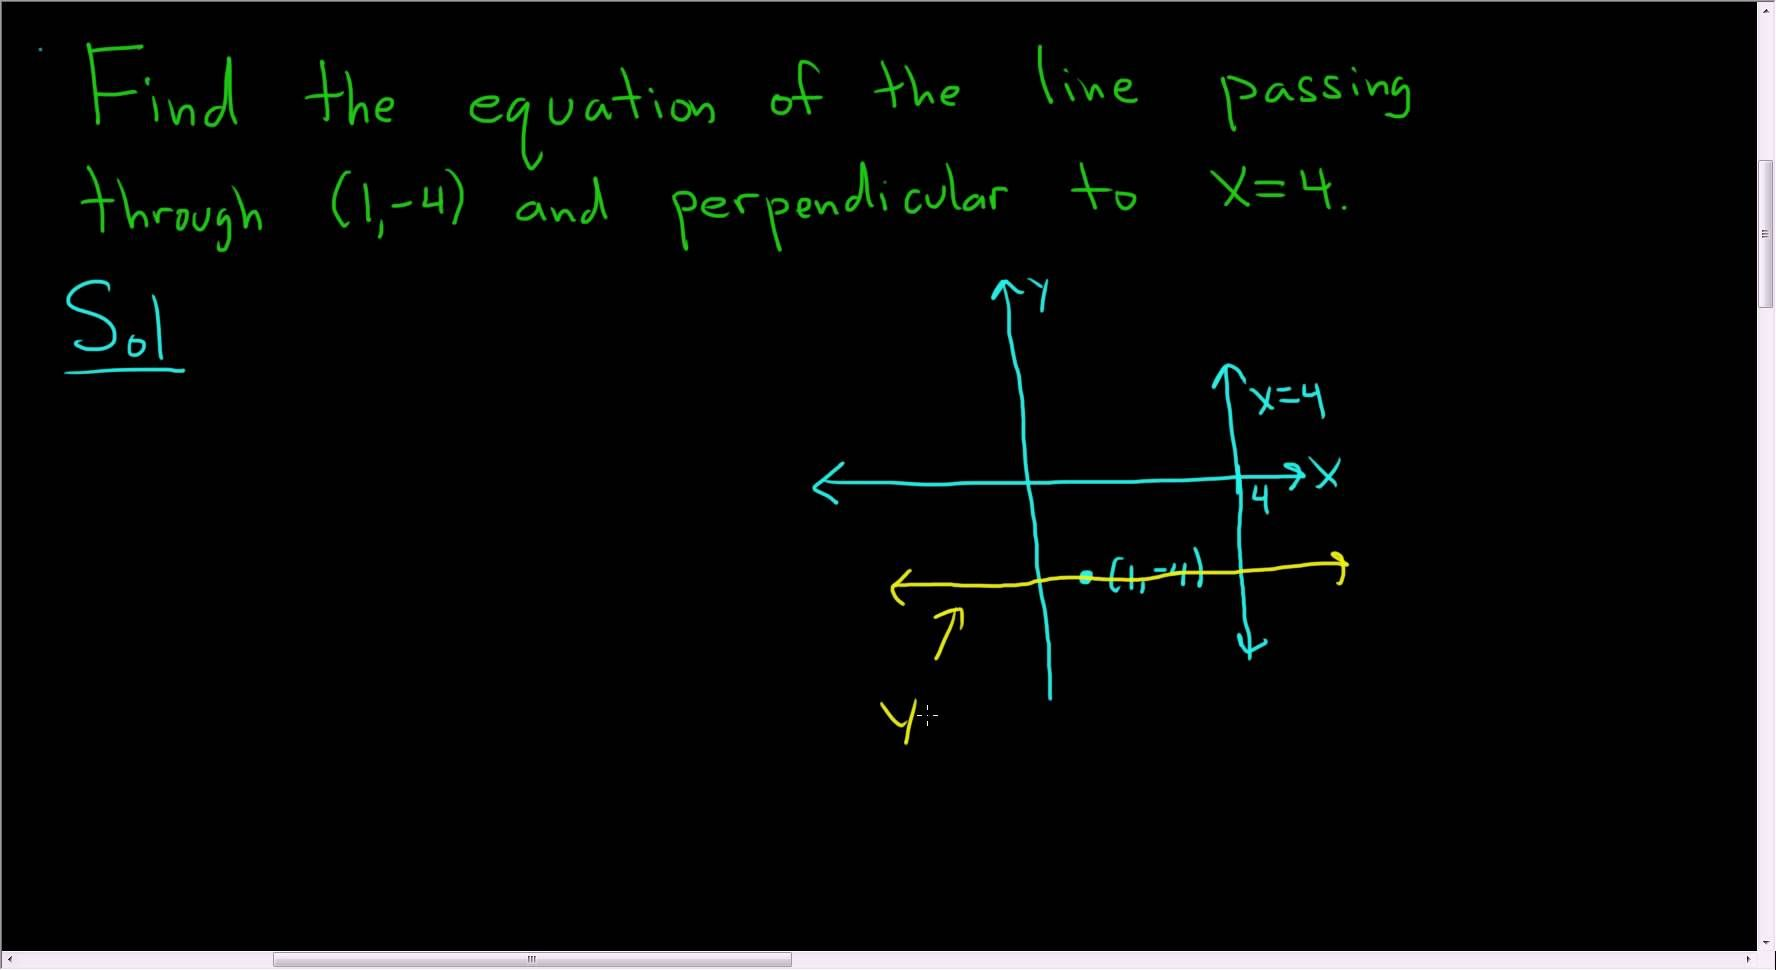 Equation Of Line Passing Through 1 4 And Perpendicular